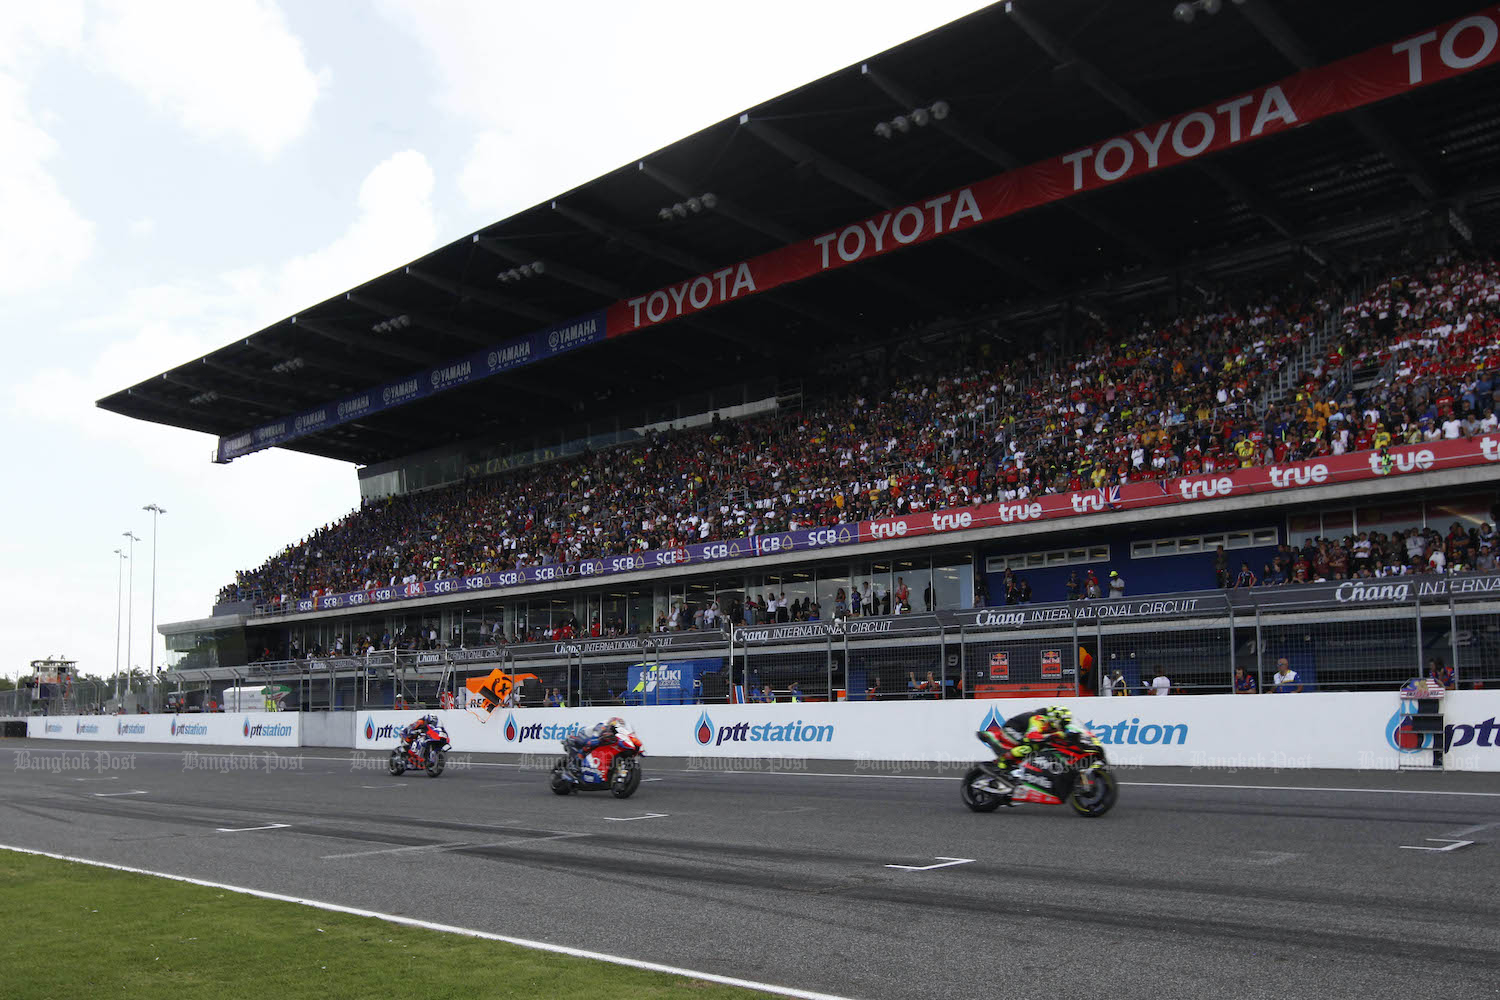 MotoGP competitors race at the Chang International Circuit in Buri Ram in 2019. (Post File Photo)